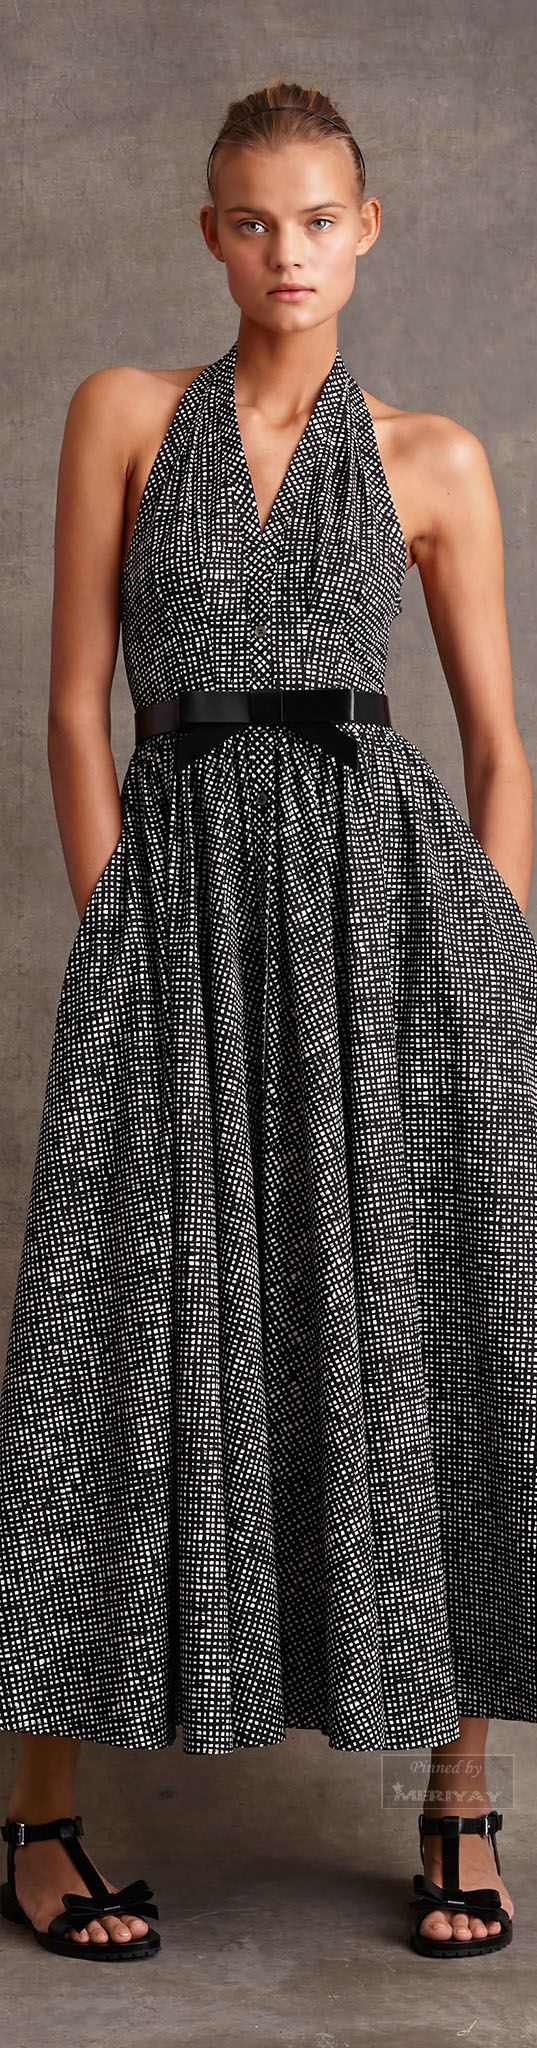 Michael Kors.Pre-Fall 2015. WWW.ALOOFSHOP.COM  THE HOTTEST NEW ONLINE STORE EARN WHILE YOU SHOP FREE SHIPPING